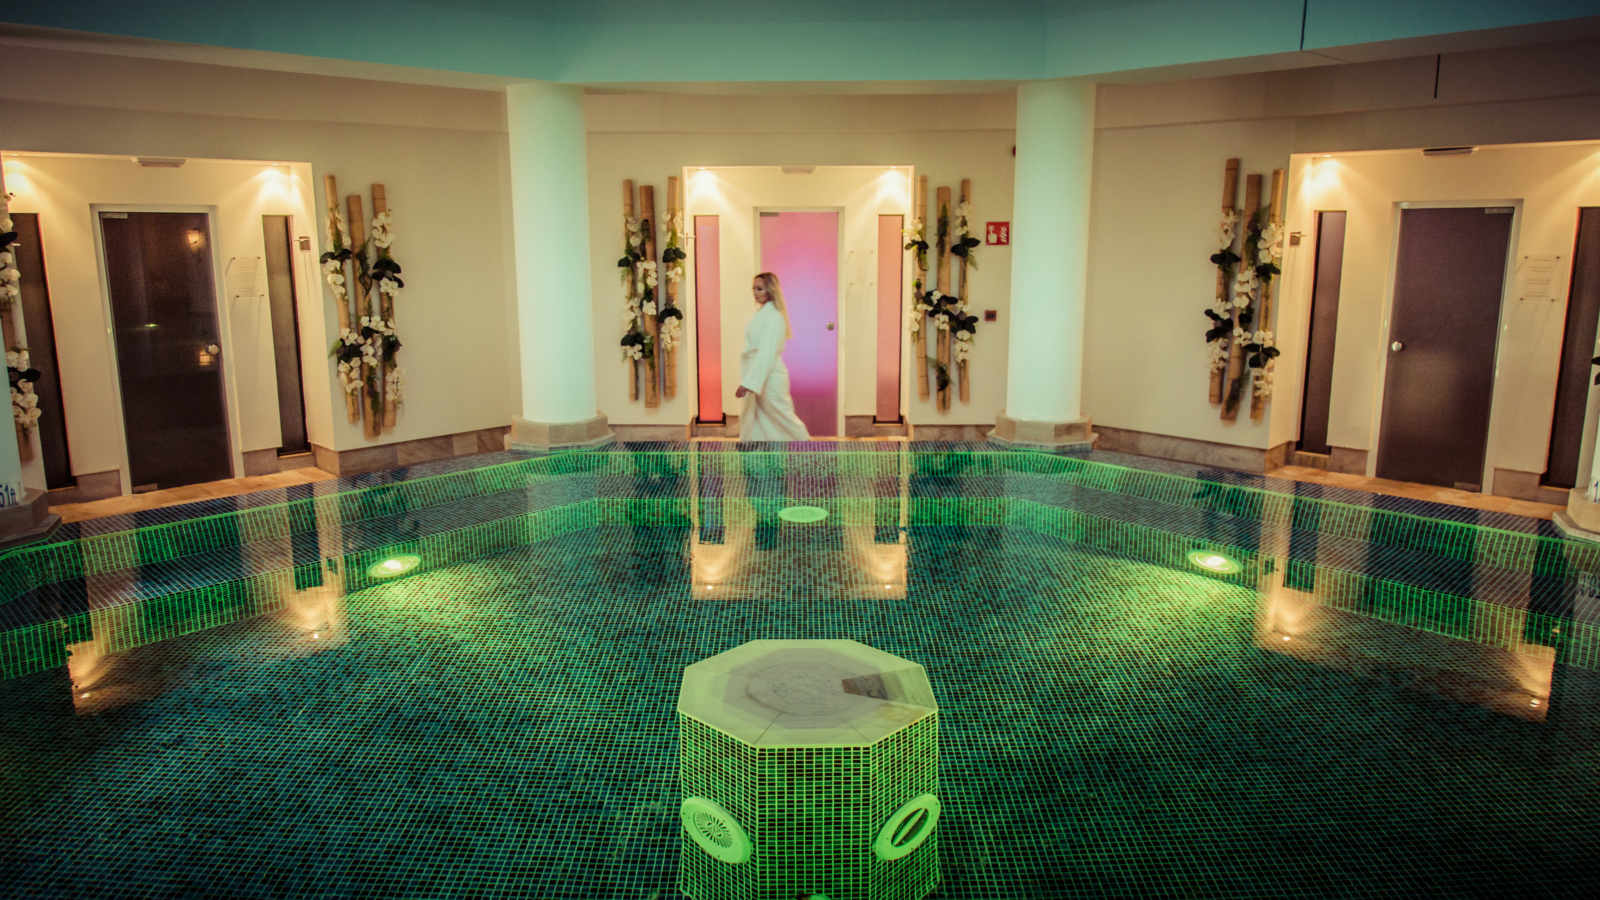 Enjoy the therapeutic benefits of our relaxing interior pool at The St.Regis Mardavall Mallorca Resort